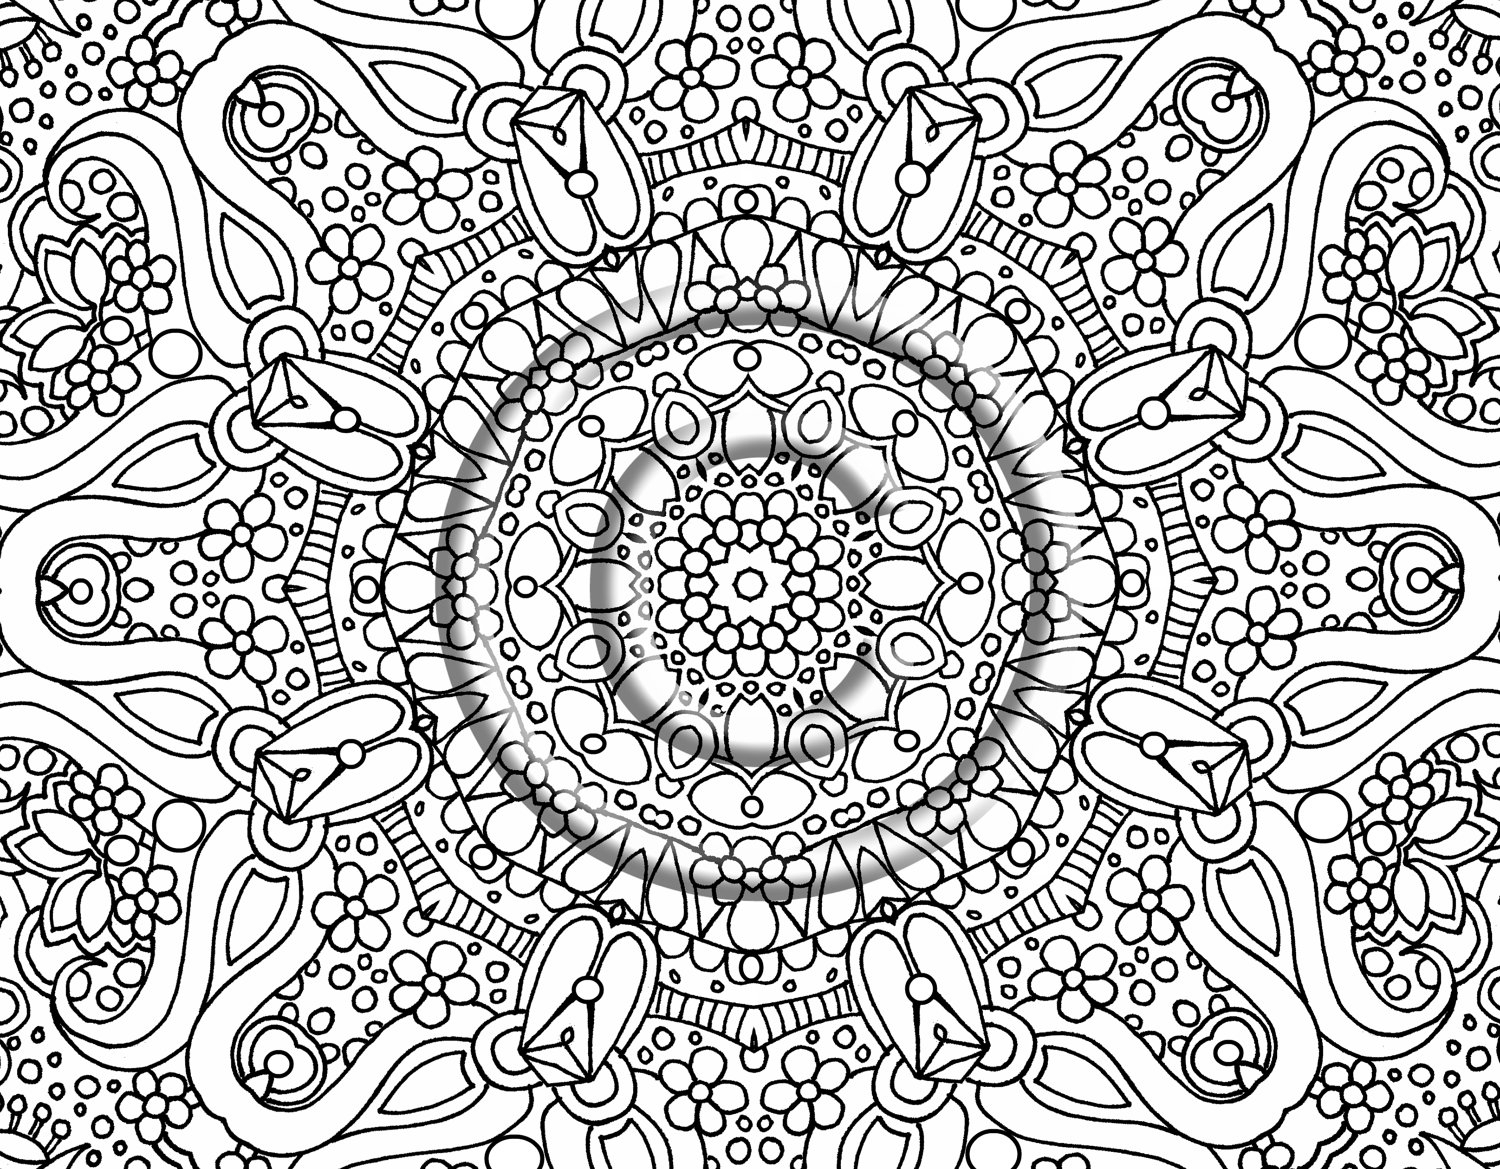 1500x1169 Awesome Unbelievable Flower Pattern Coloring Page With Hard